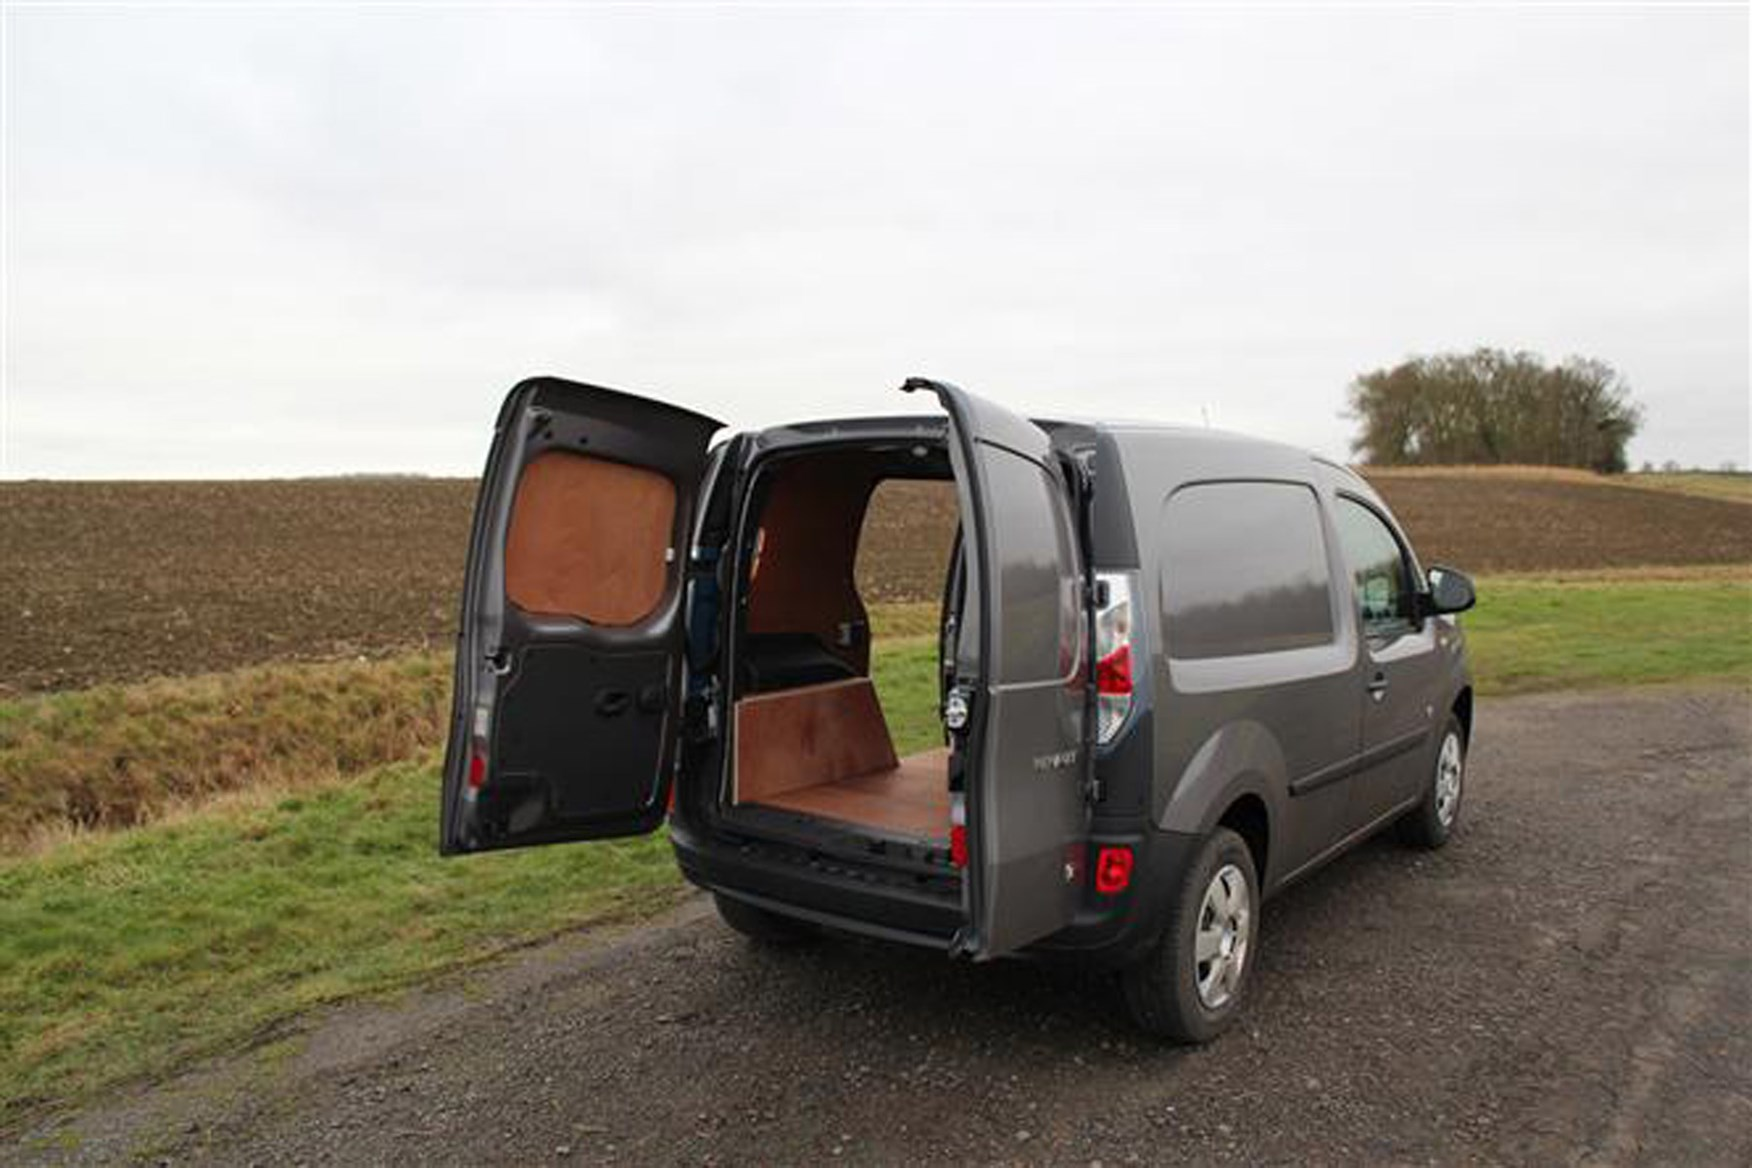 Renault Kangoo full review on Parkers Vans - load area